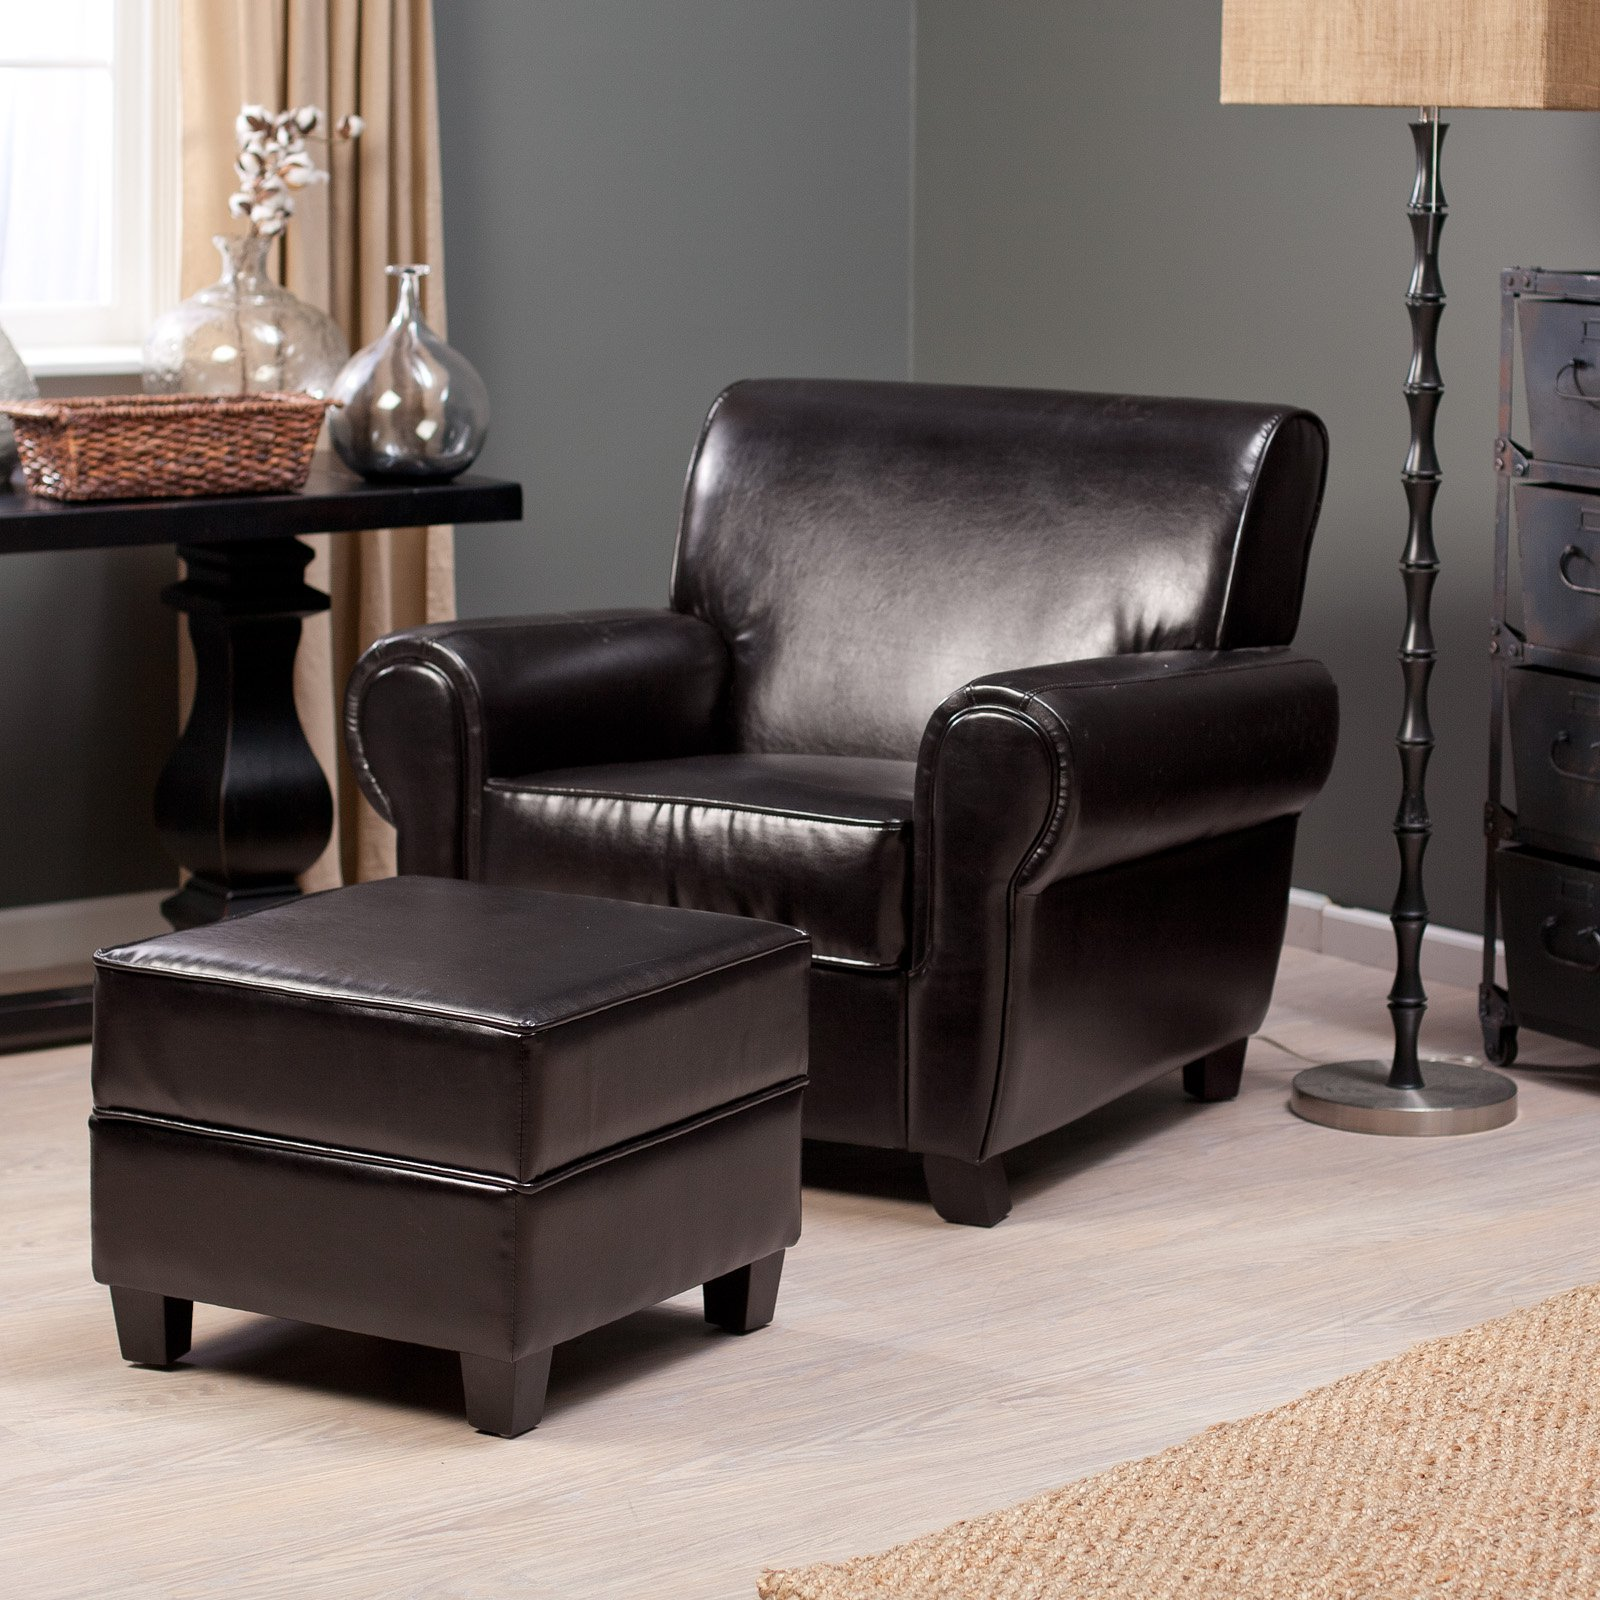 Small Bedroom Chairs With Arms Furniture Alluring Leather Chair And Ottoman For Cozy Home